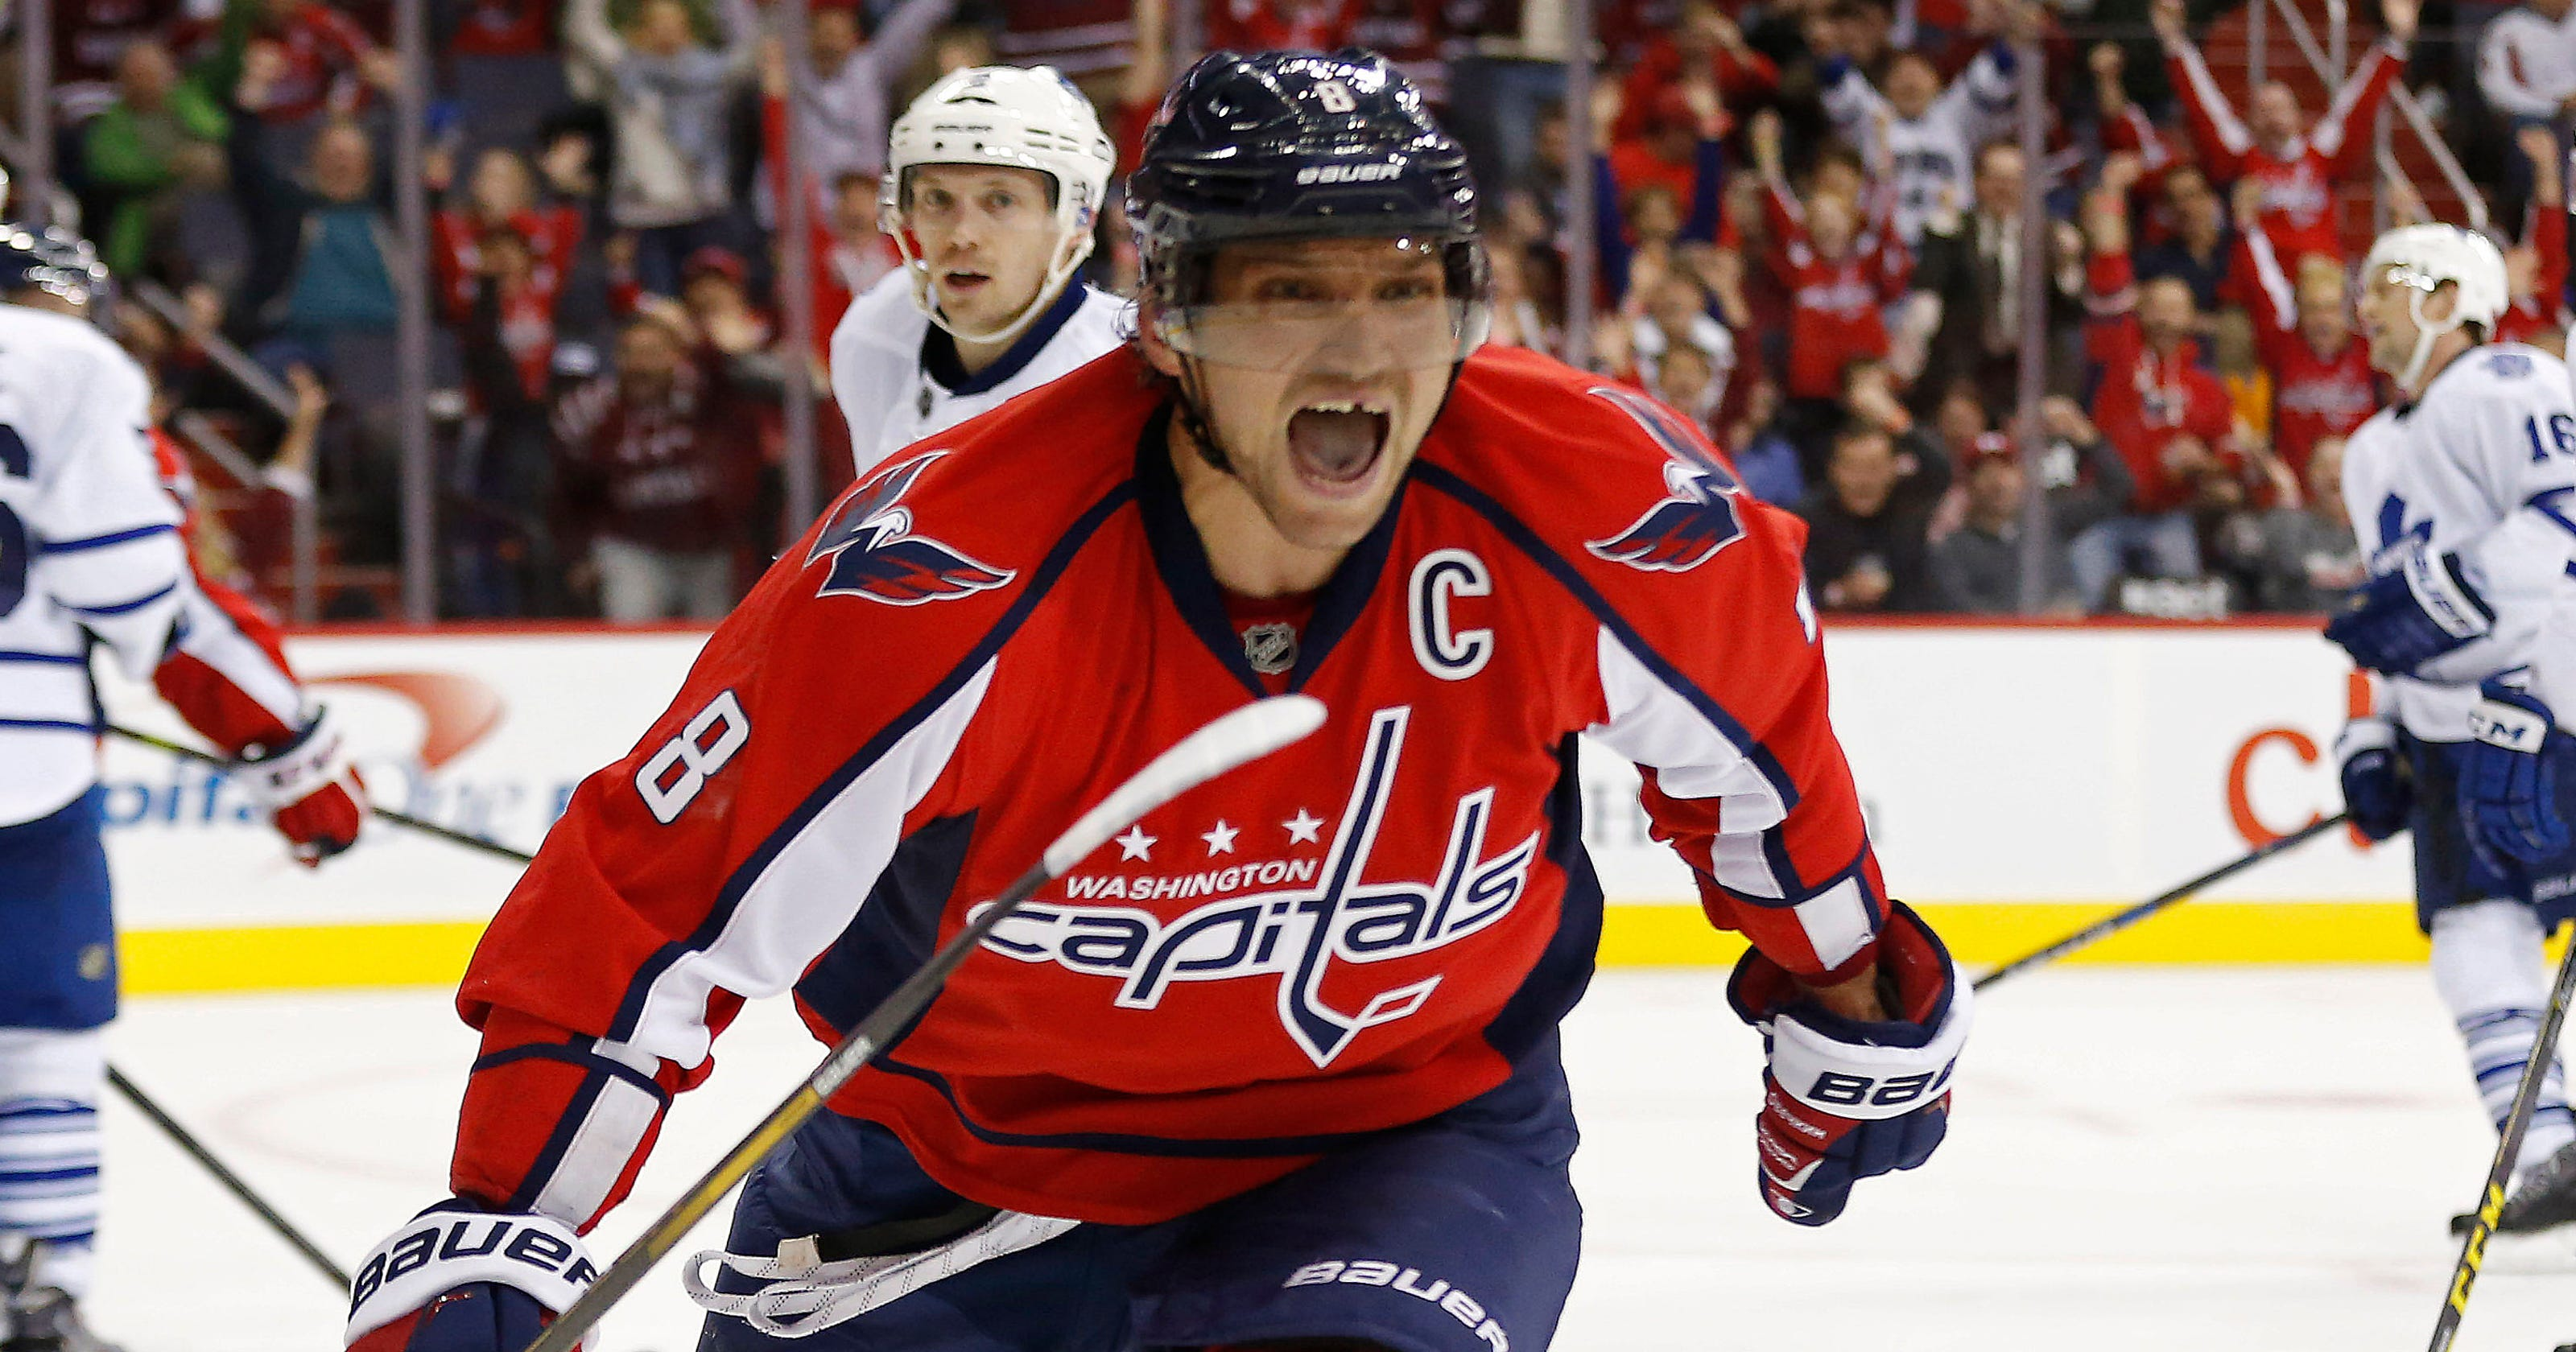 e3a0c4a8e9f Alex Ovechkin is simply one of the most amazing players in NHL history